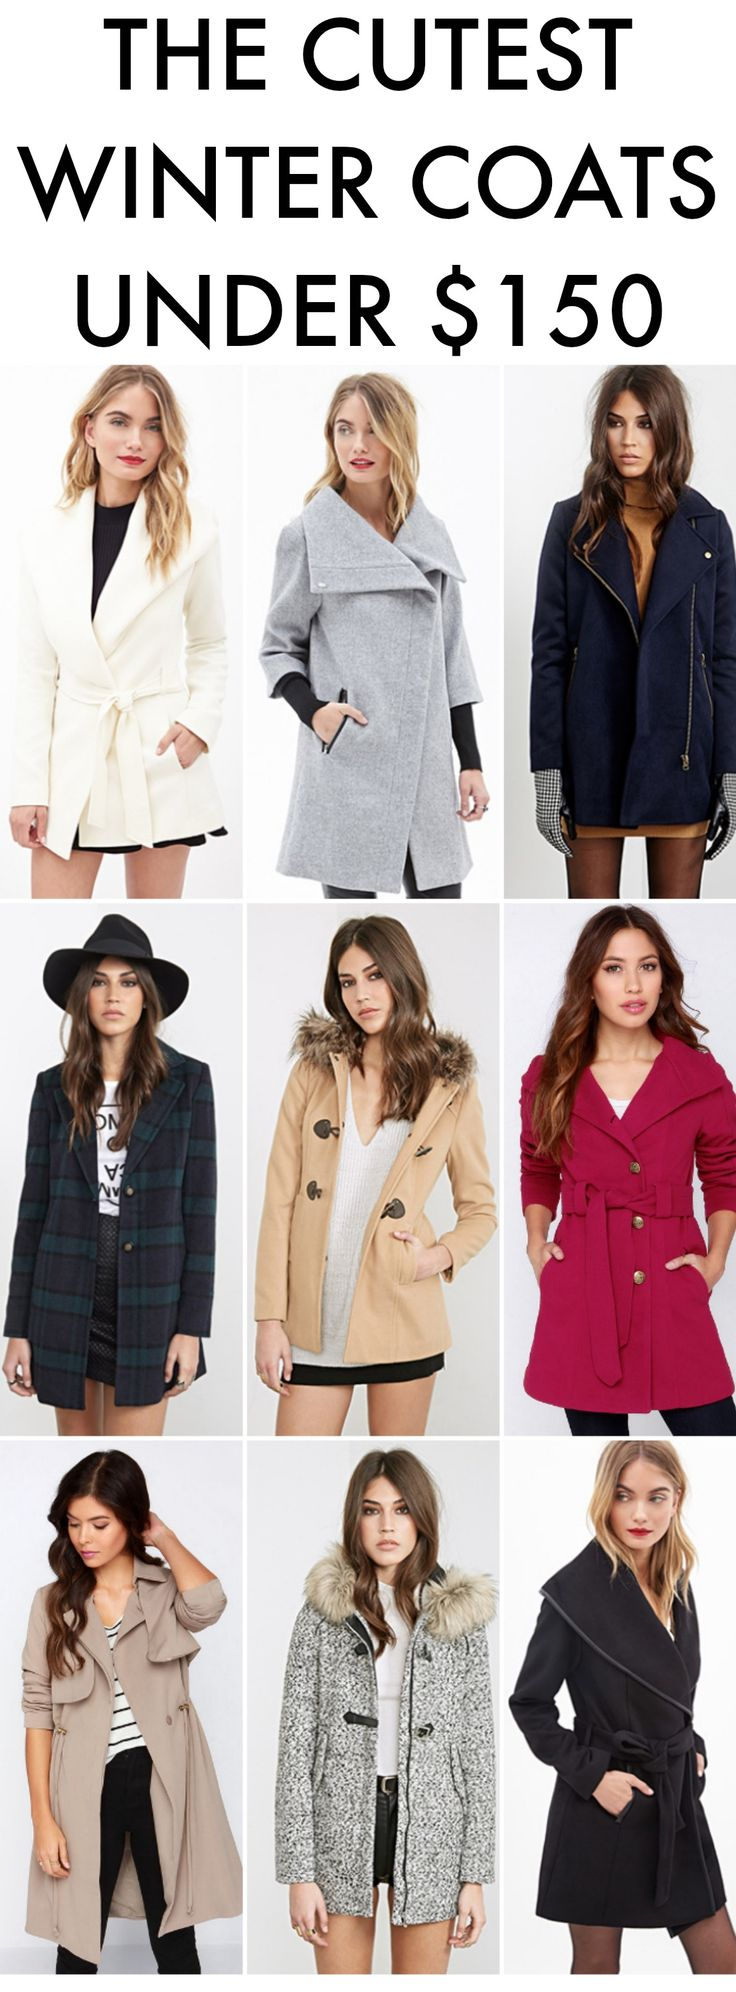 See 36 of the cutest winter coats, and they're all under $150 with many under $50!